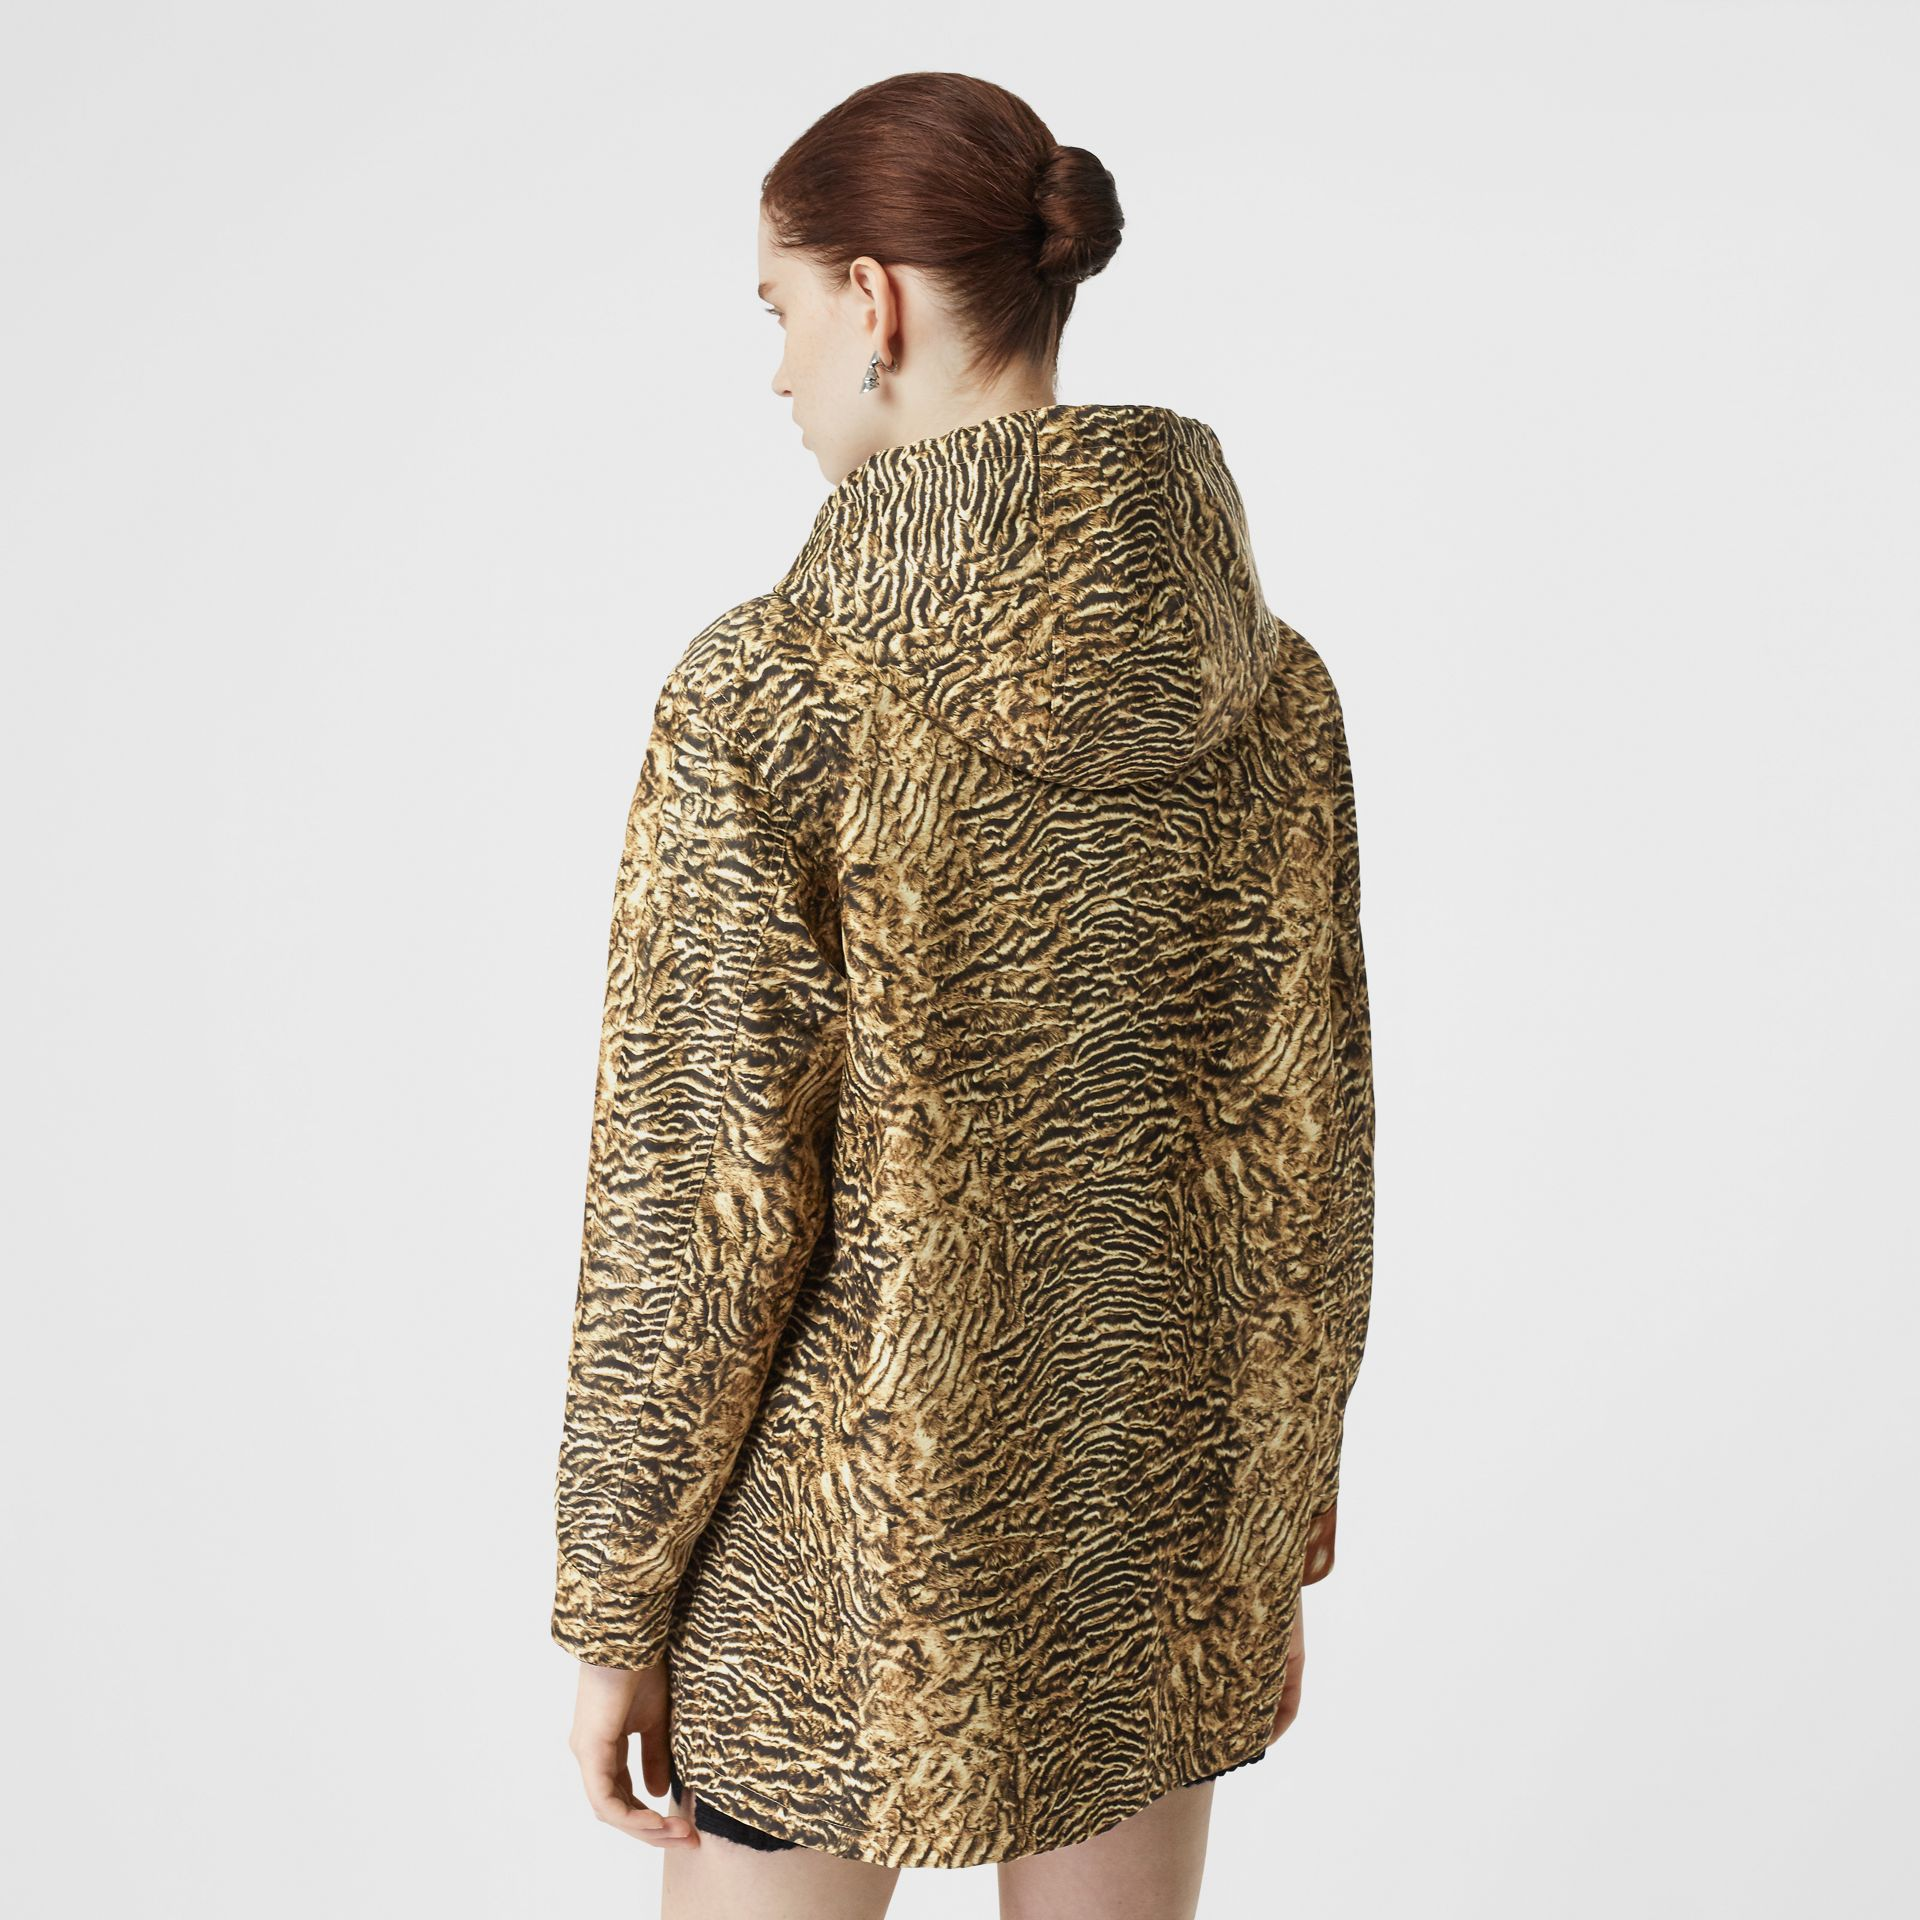 Tiger Print Lightweight Hooded Jacket in Beige - Women | Burberry - gallery image 2